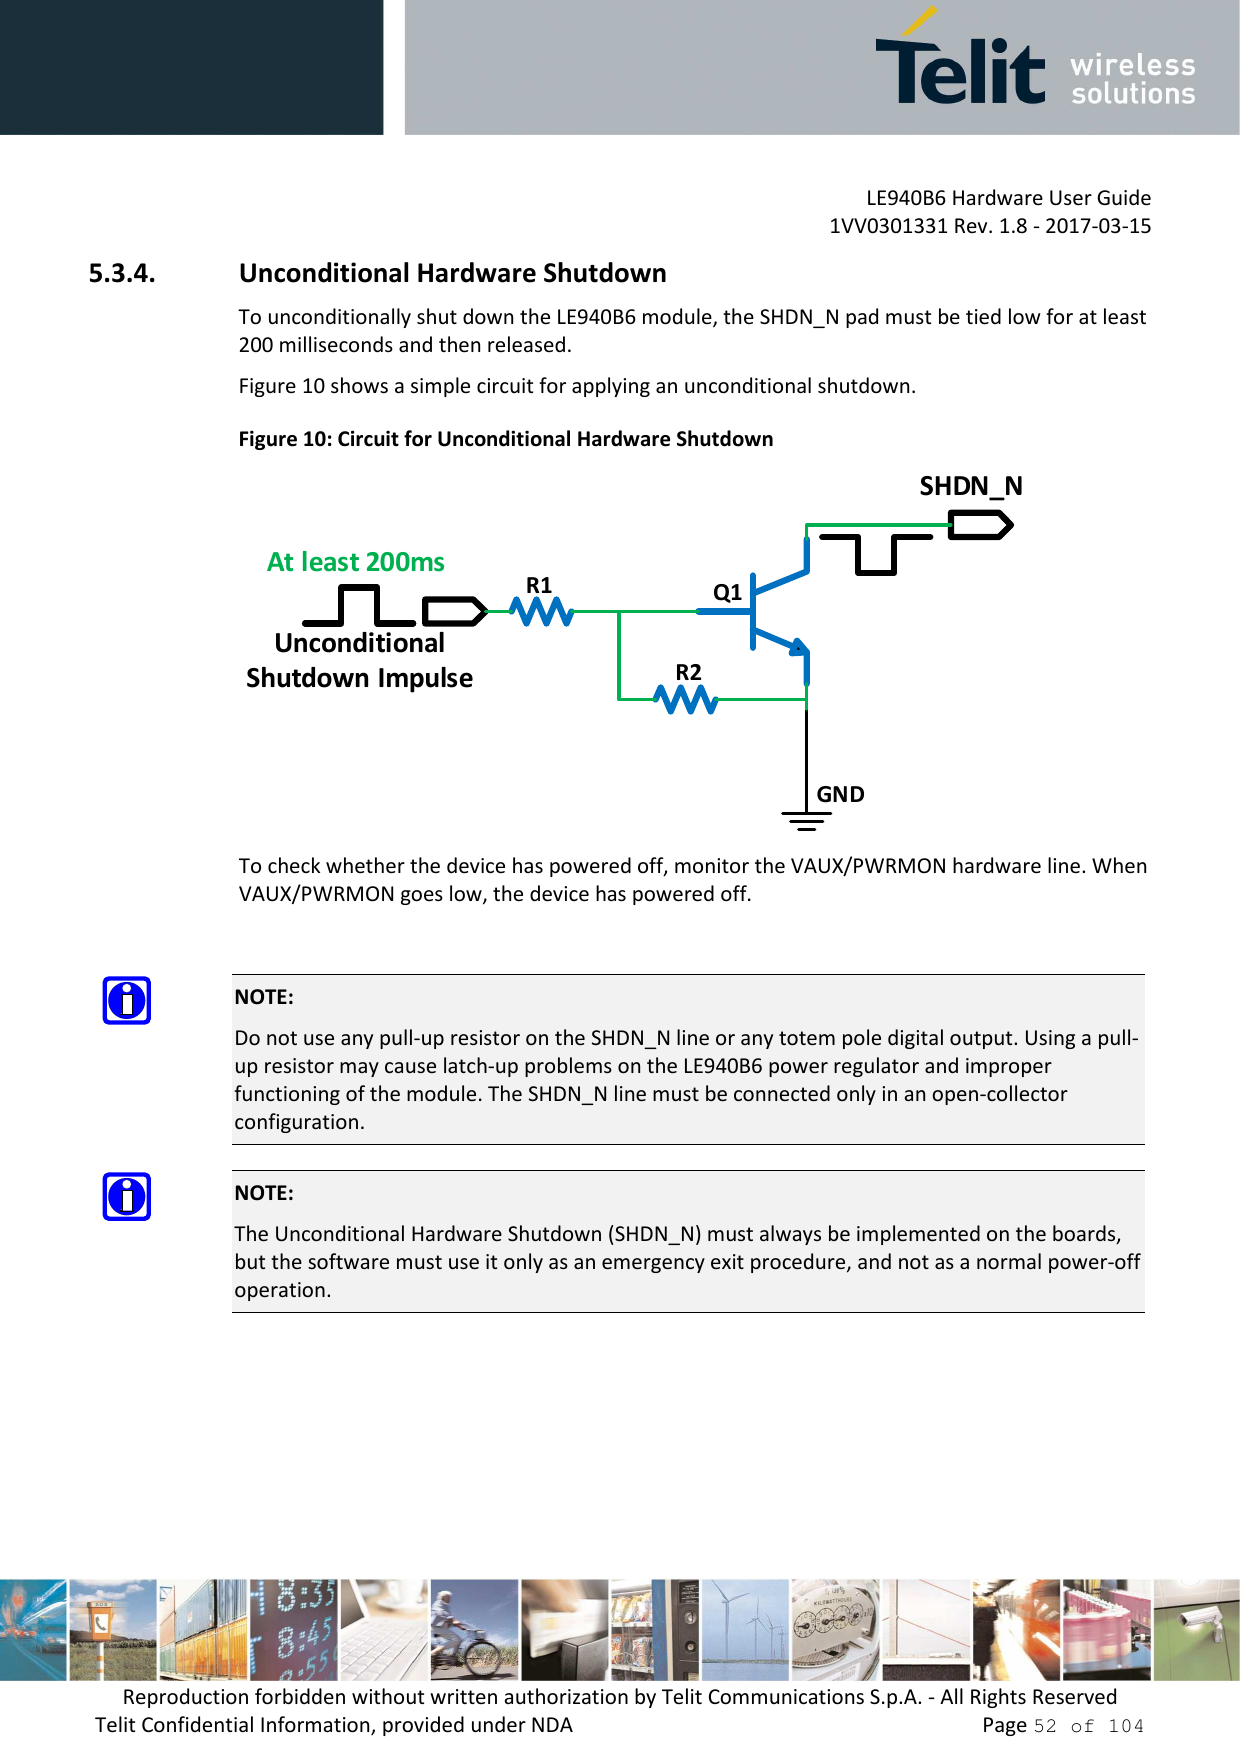 LE940B6 Hardware User Guide     1VV0301331 Rev. 1.8 - 2017-03-15 Reproduction forbidden without written authorization by Telit Communications S.p.A. - All Rights Reserved Telit Confidential Information, provided under NDA                 Page 52 of 104 5.3.4. Unconditional Hardware Shutdown To unconditionally shut down the LE940B6 module, the SHDN_N pad must be tied low for at least 200 milliseconds and then released. Figure 10 shows a simple circuit for applying an unconditional shutdown. Figure 10: Circuit for Unconditional Hardware Shutdown GNDR1R2Q1UnconditionalShutdown ImpulseAt least 200msSHDN_N To check whether the device has powered off, monitor the VAUX/PWRMON hardware line. When VAUX/PWRMON goes low, the device has powered off.   NOTE: Do not use any pull-up resistor on the SHDN_N line or any totem pole digital output. Using a pull-up resistor may cause latch-up problems on the LE940B6 power regulator and improper functioning of the module. The SHDN_N line must be connected only in an open-collector configuration.  NOTE: The Unconditional Hardware Shutdown (SHDN_N) must always be implemented on the boards, but the software must use it only as an emergency exit procedure, and not as a normal power-off operation.